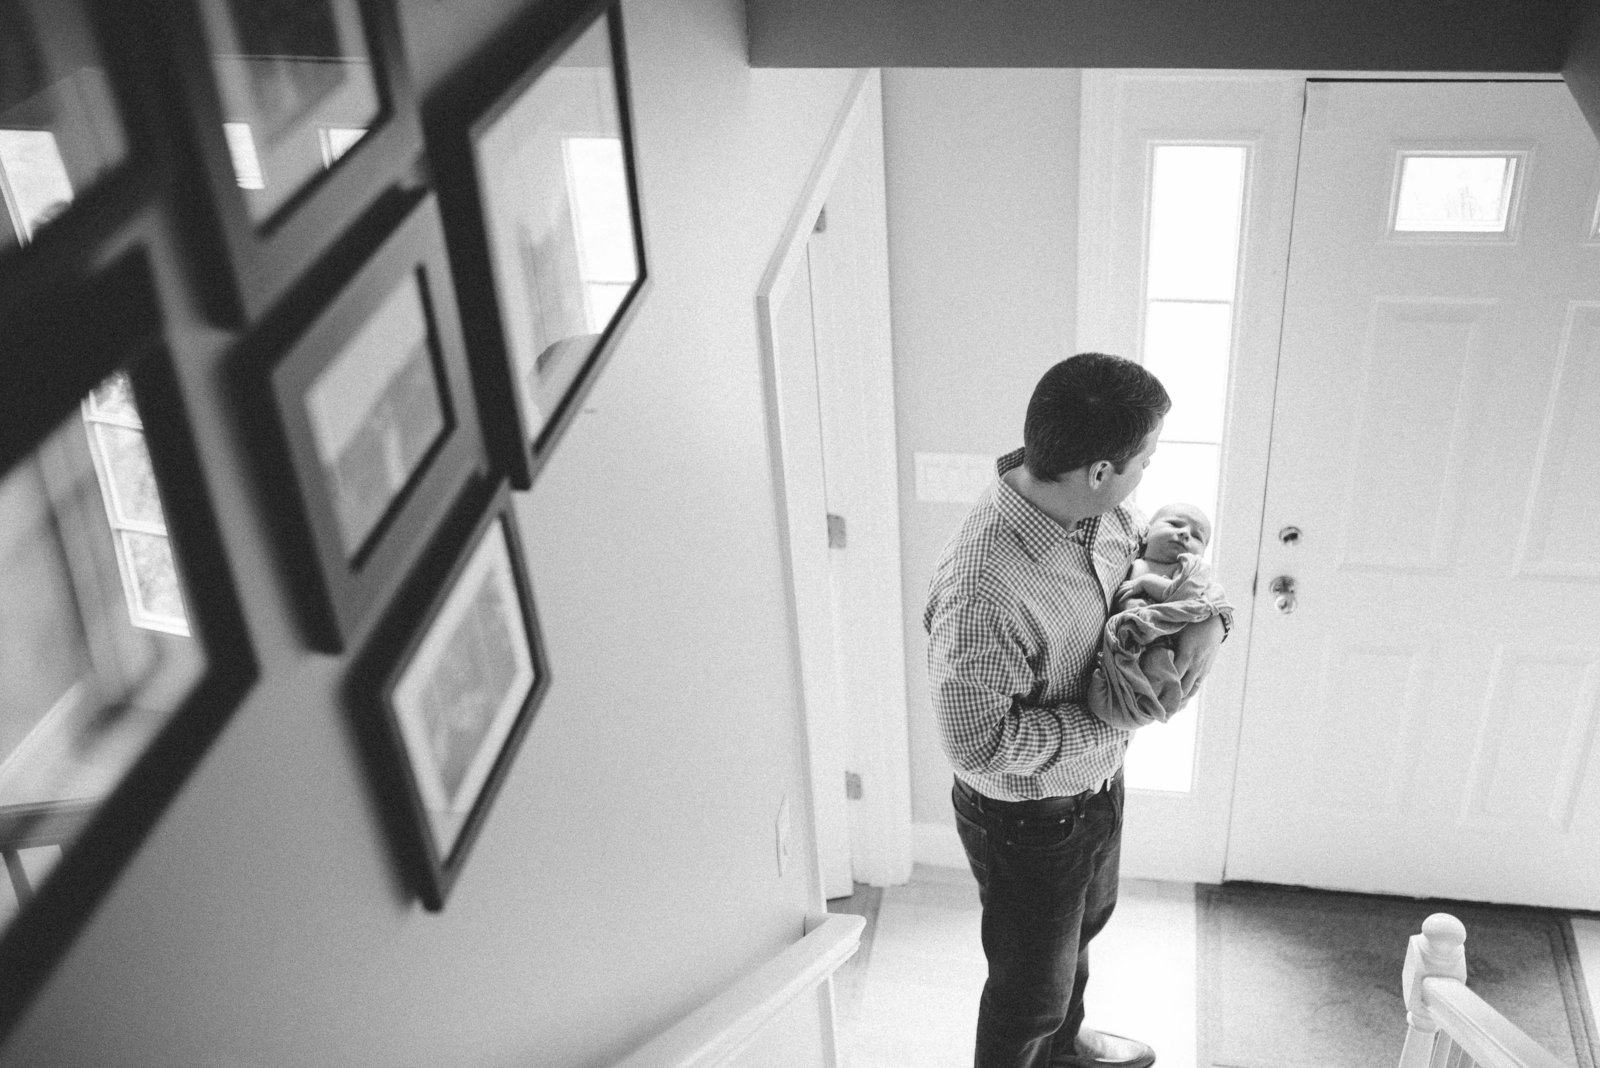 Newnborn at home in father's hands in Boston lifestyle home session